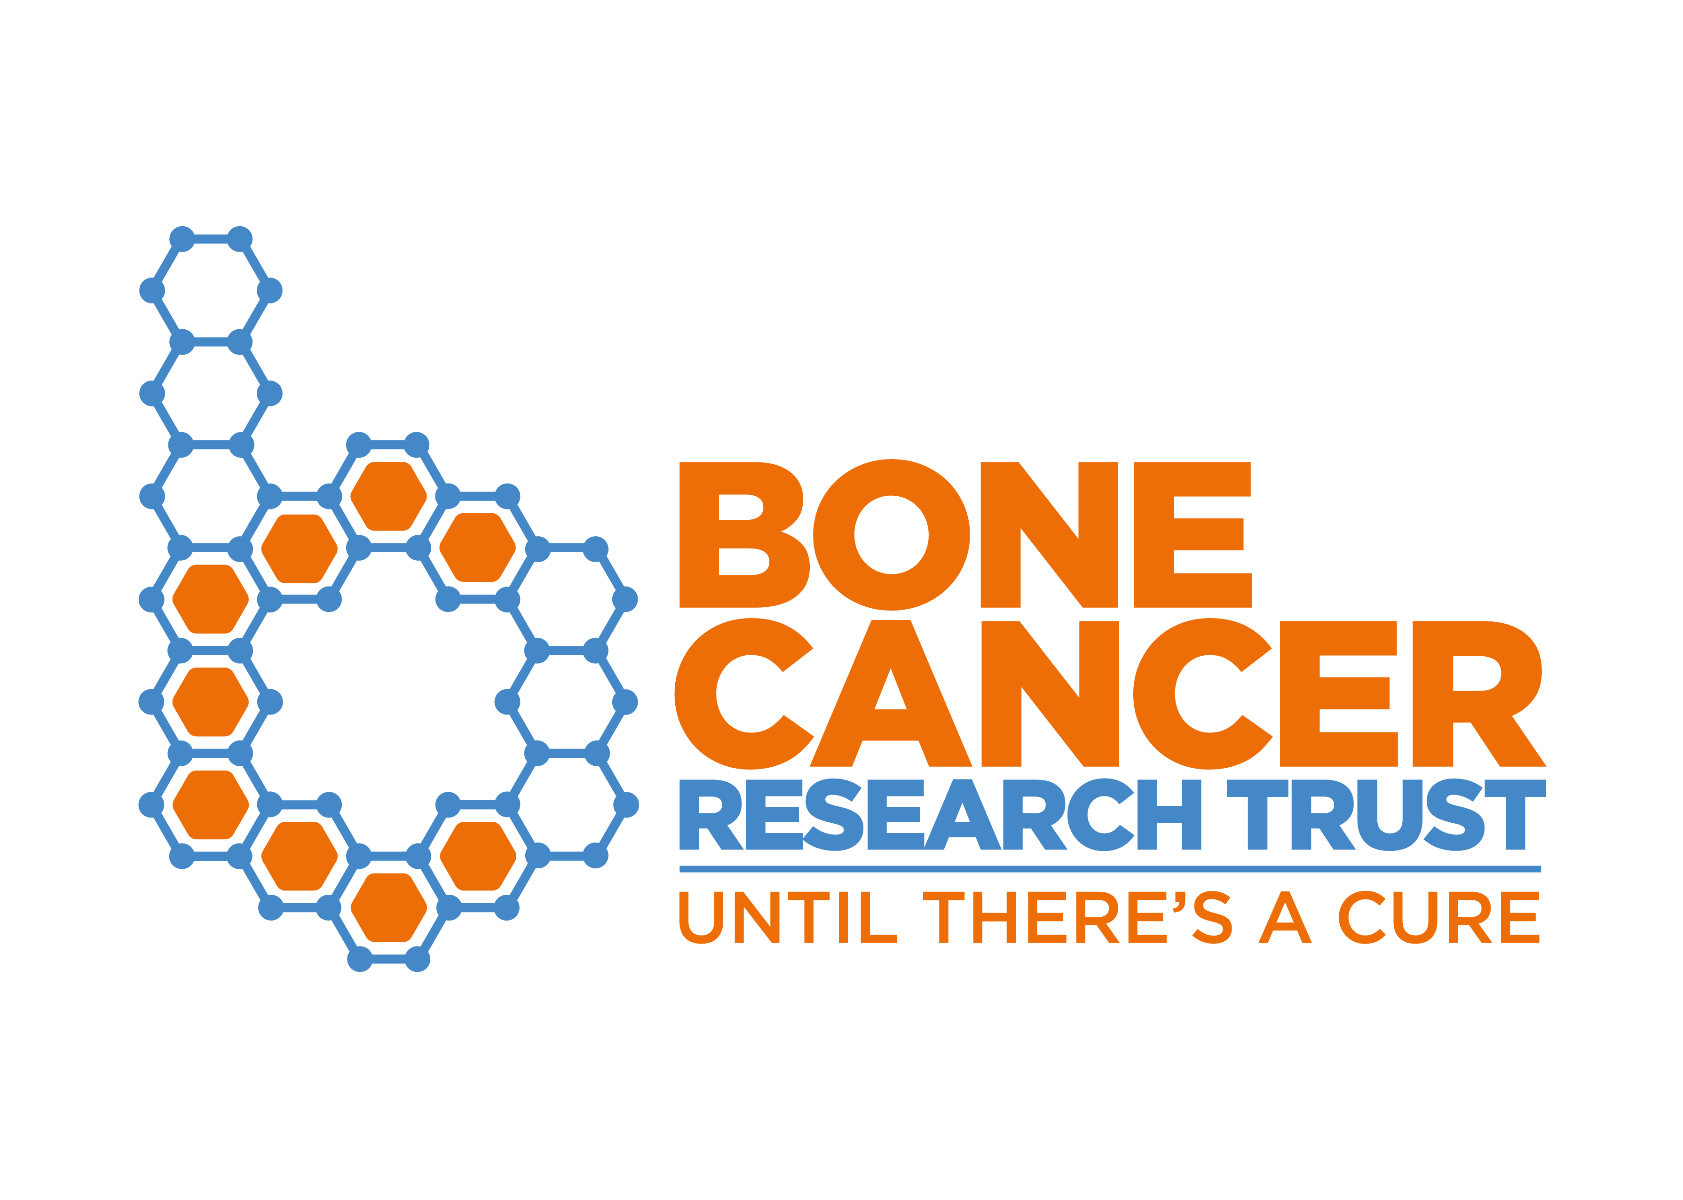 Bonce Cancer Research Trust logo